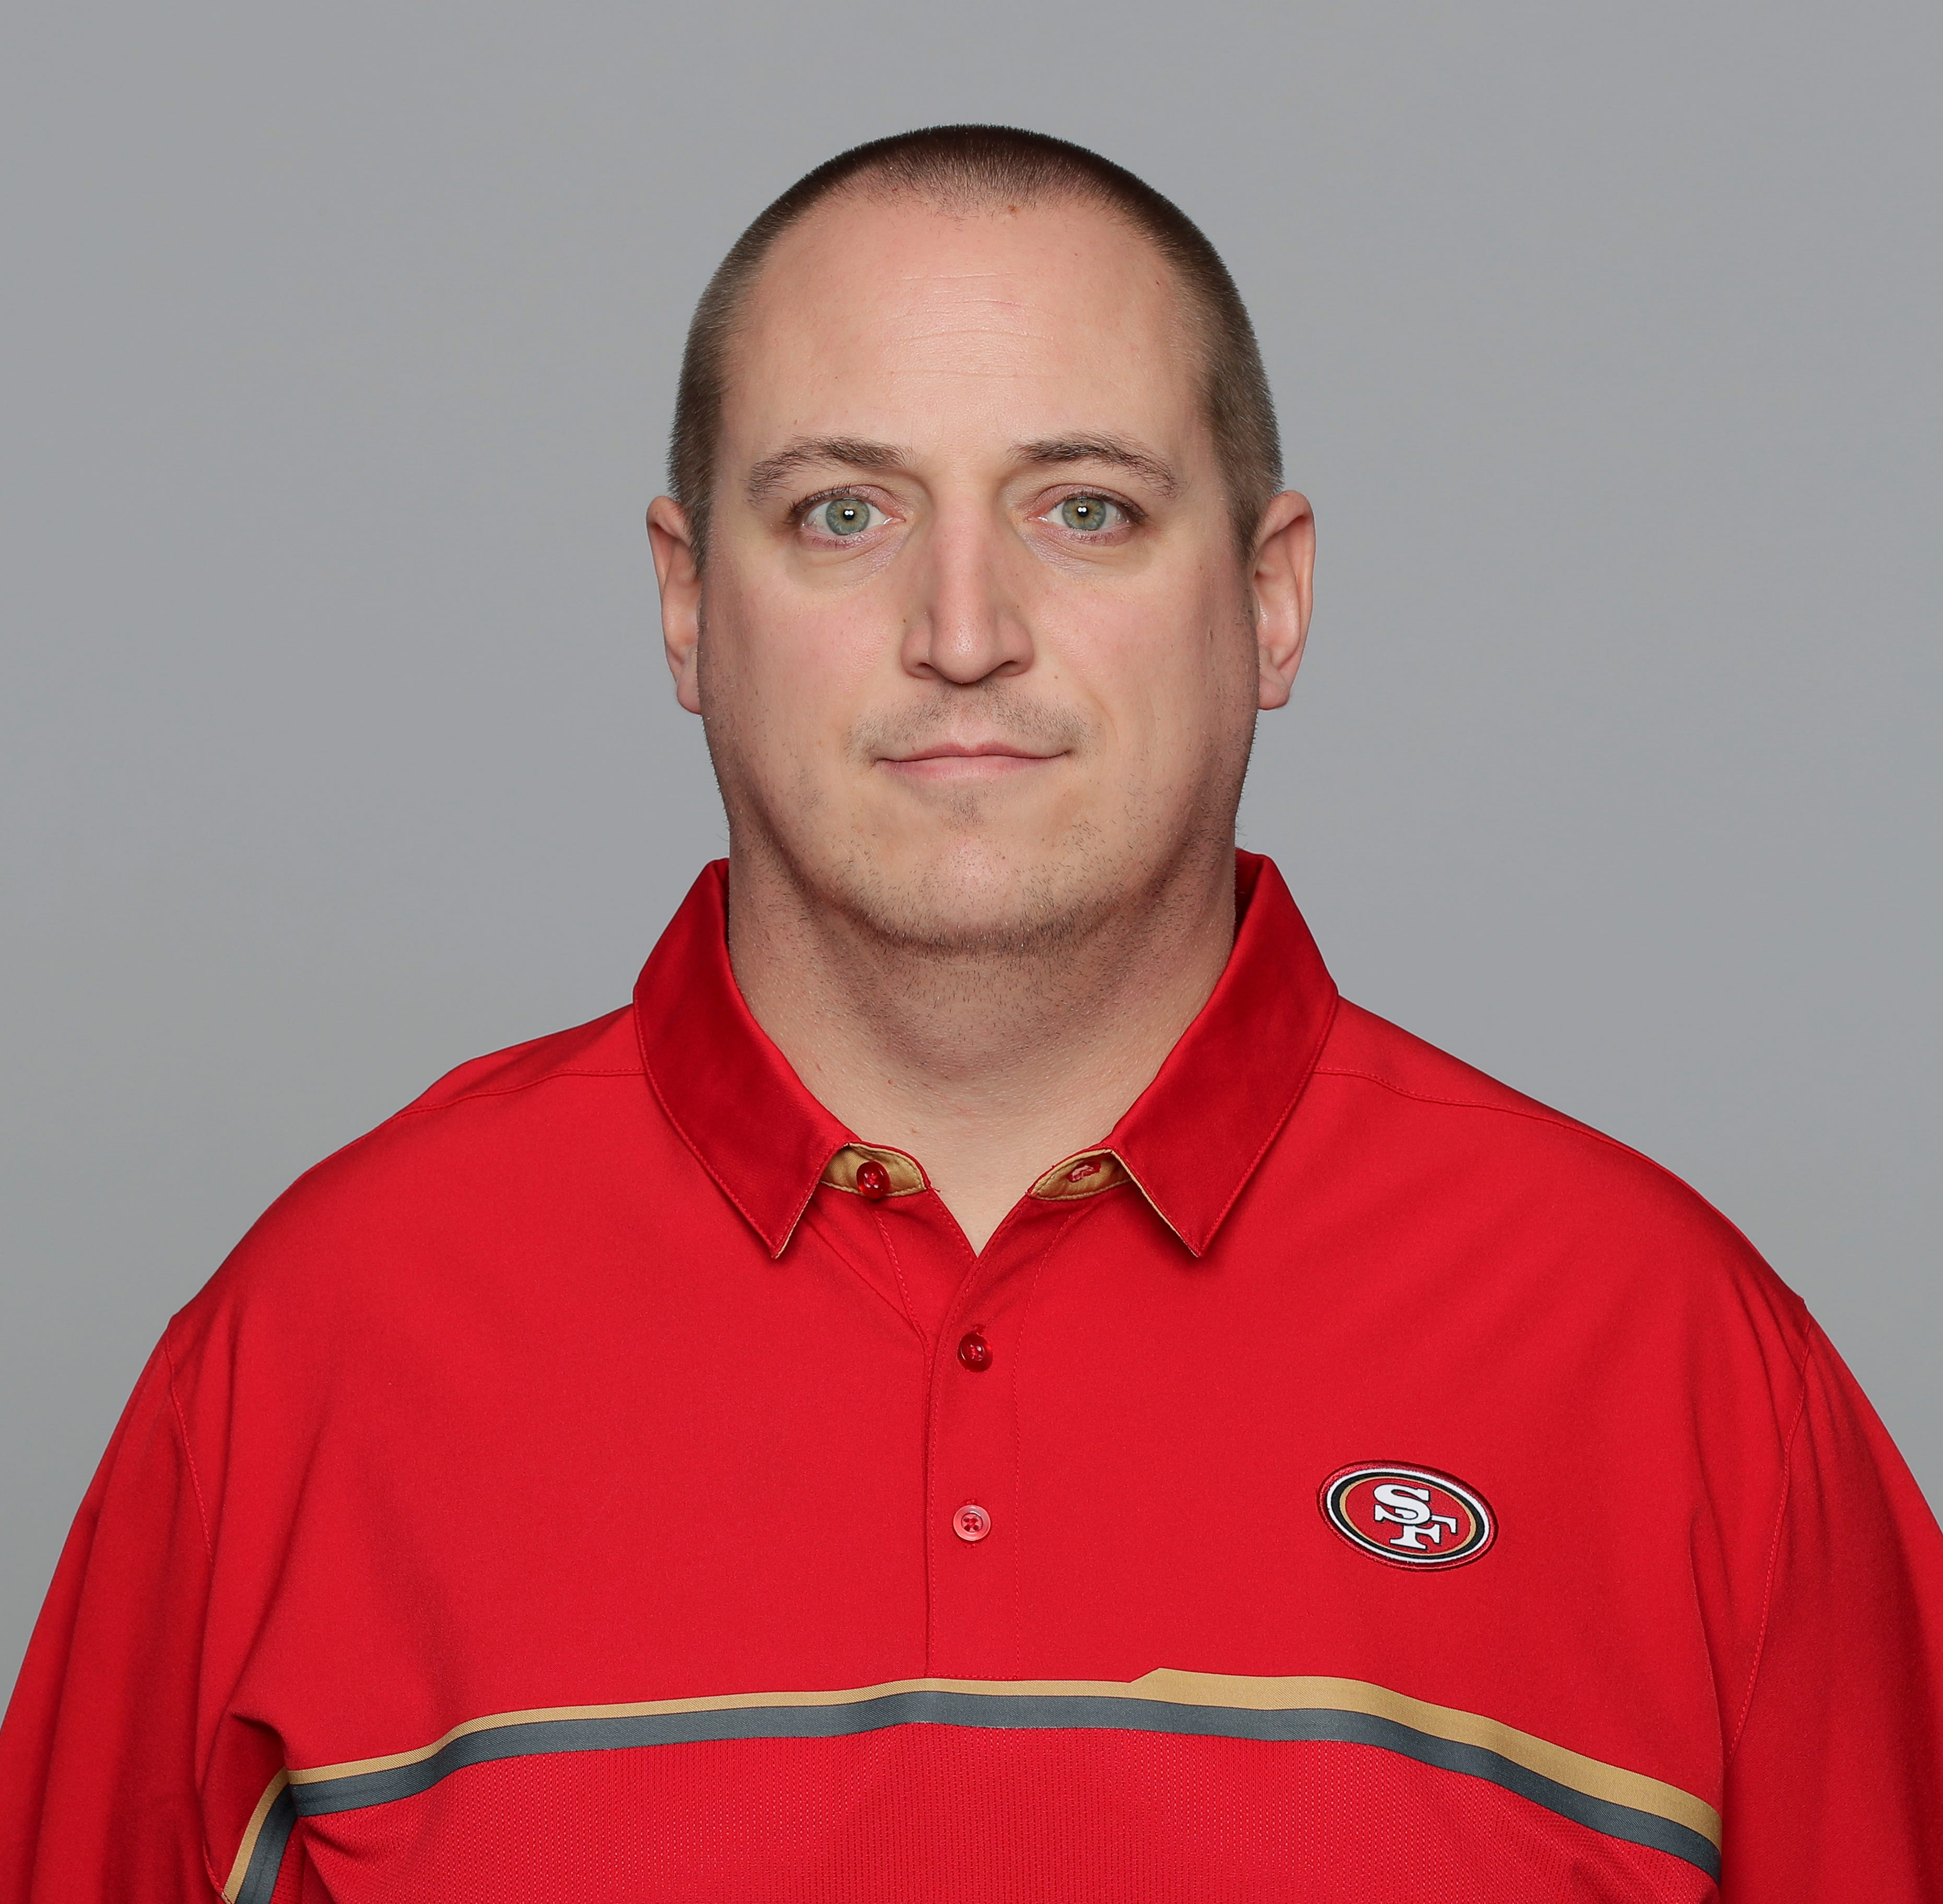 Report: Stenavich to be named Packers offensive line coach; Olivadotti to coach linebackers